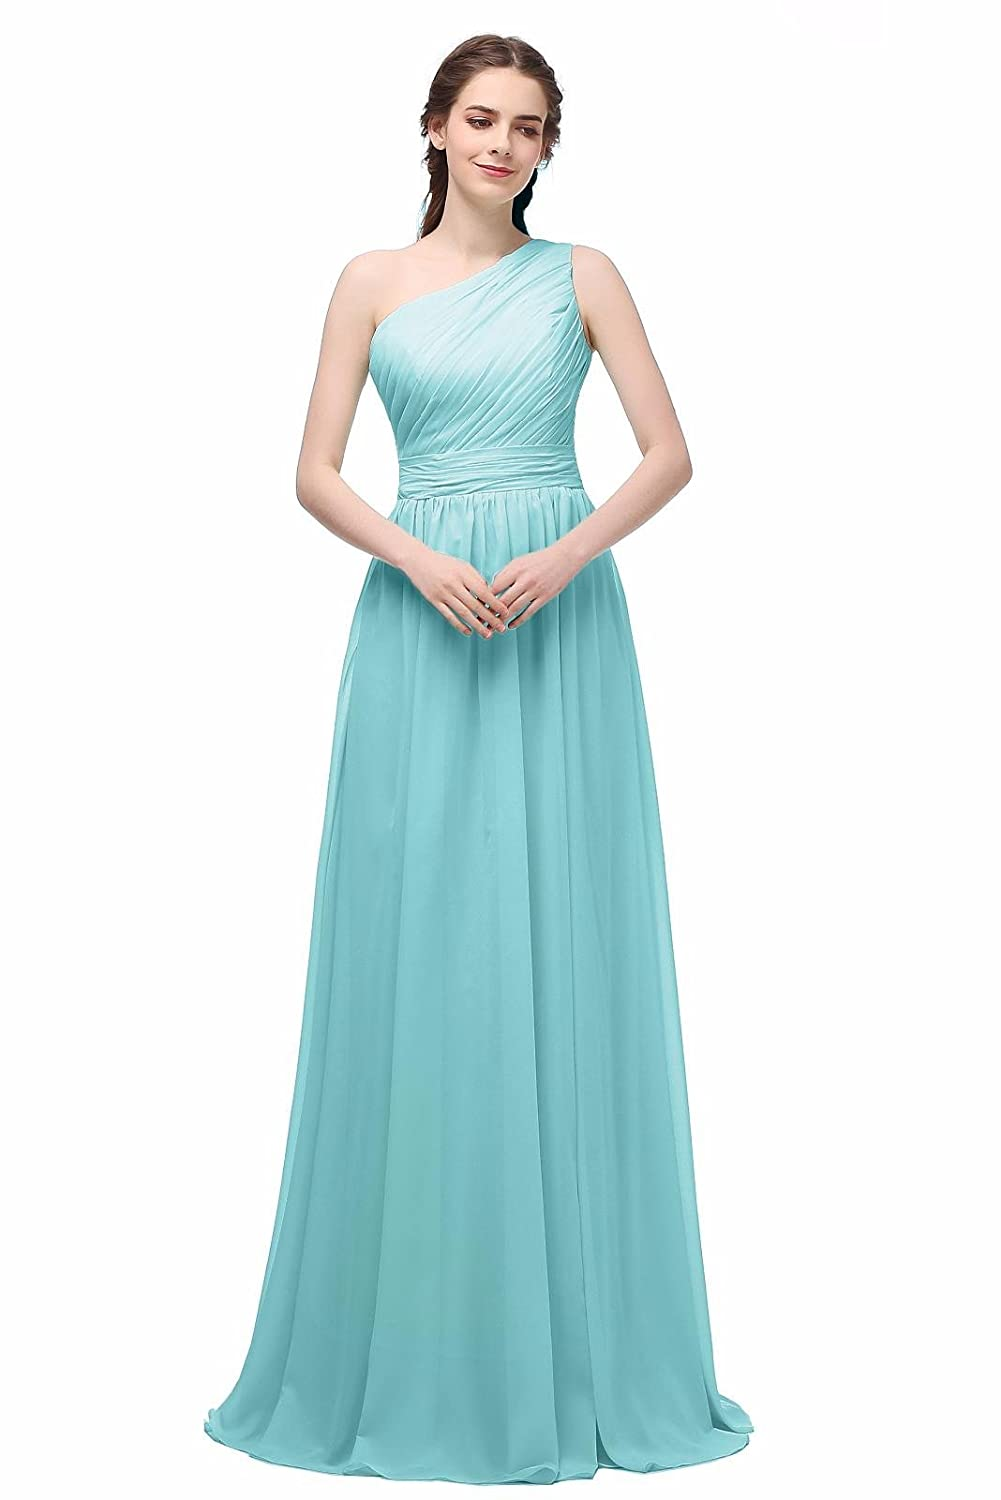 e891f0b6b2c4 Ever Girl Women's Bridesmaid Chiffon Prom Dresses Long Evening Gowns at  Amazon Women's Clothing store: